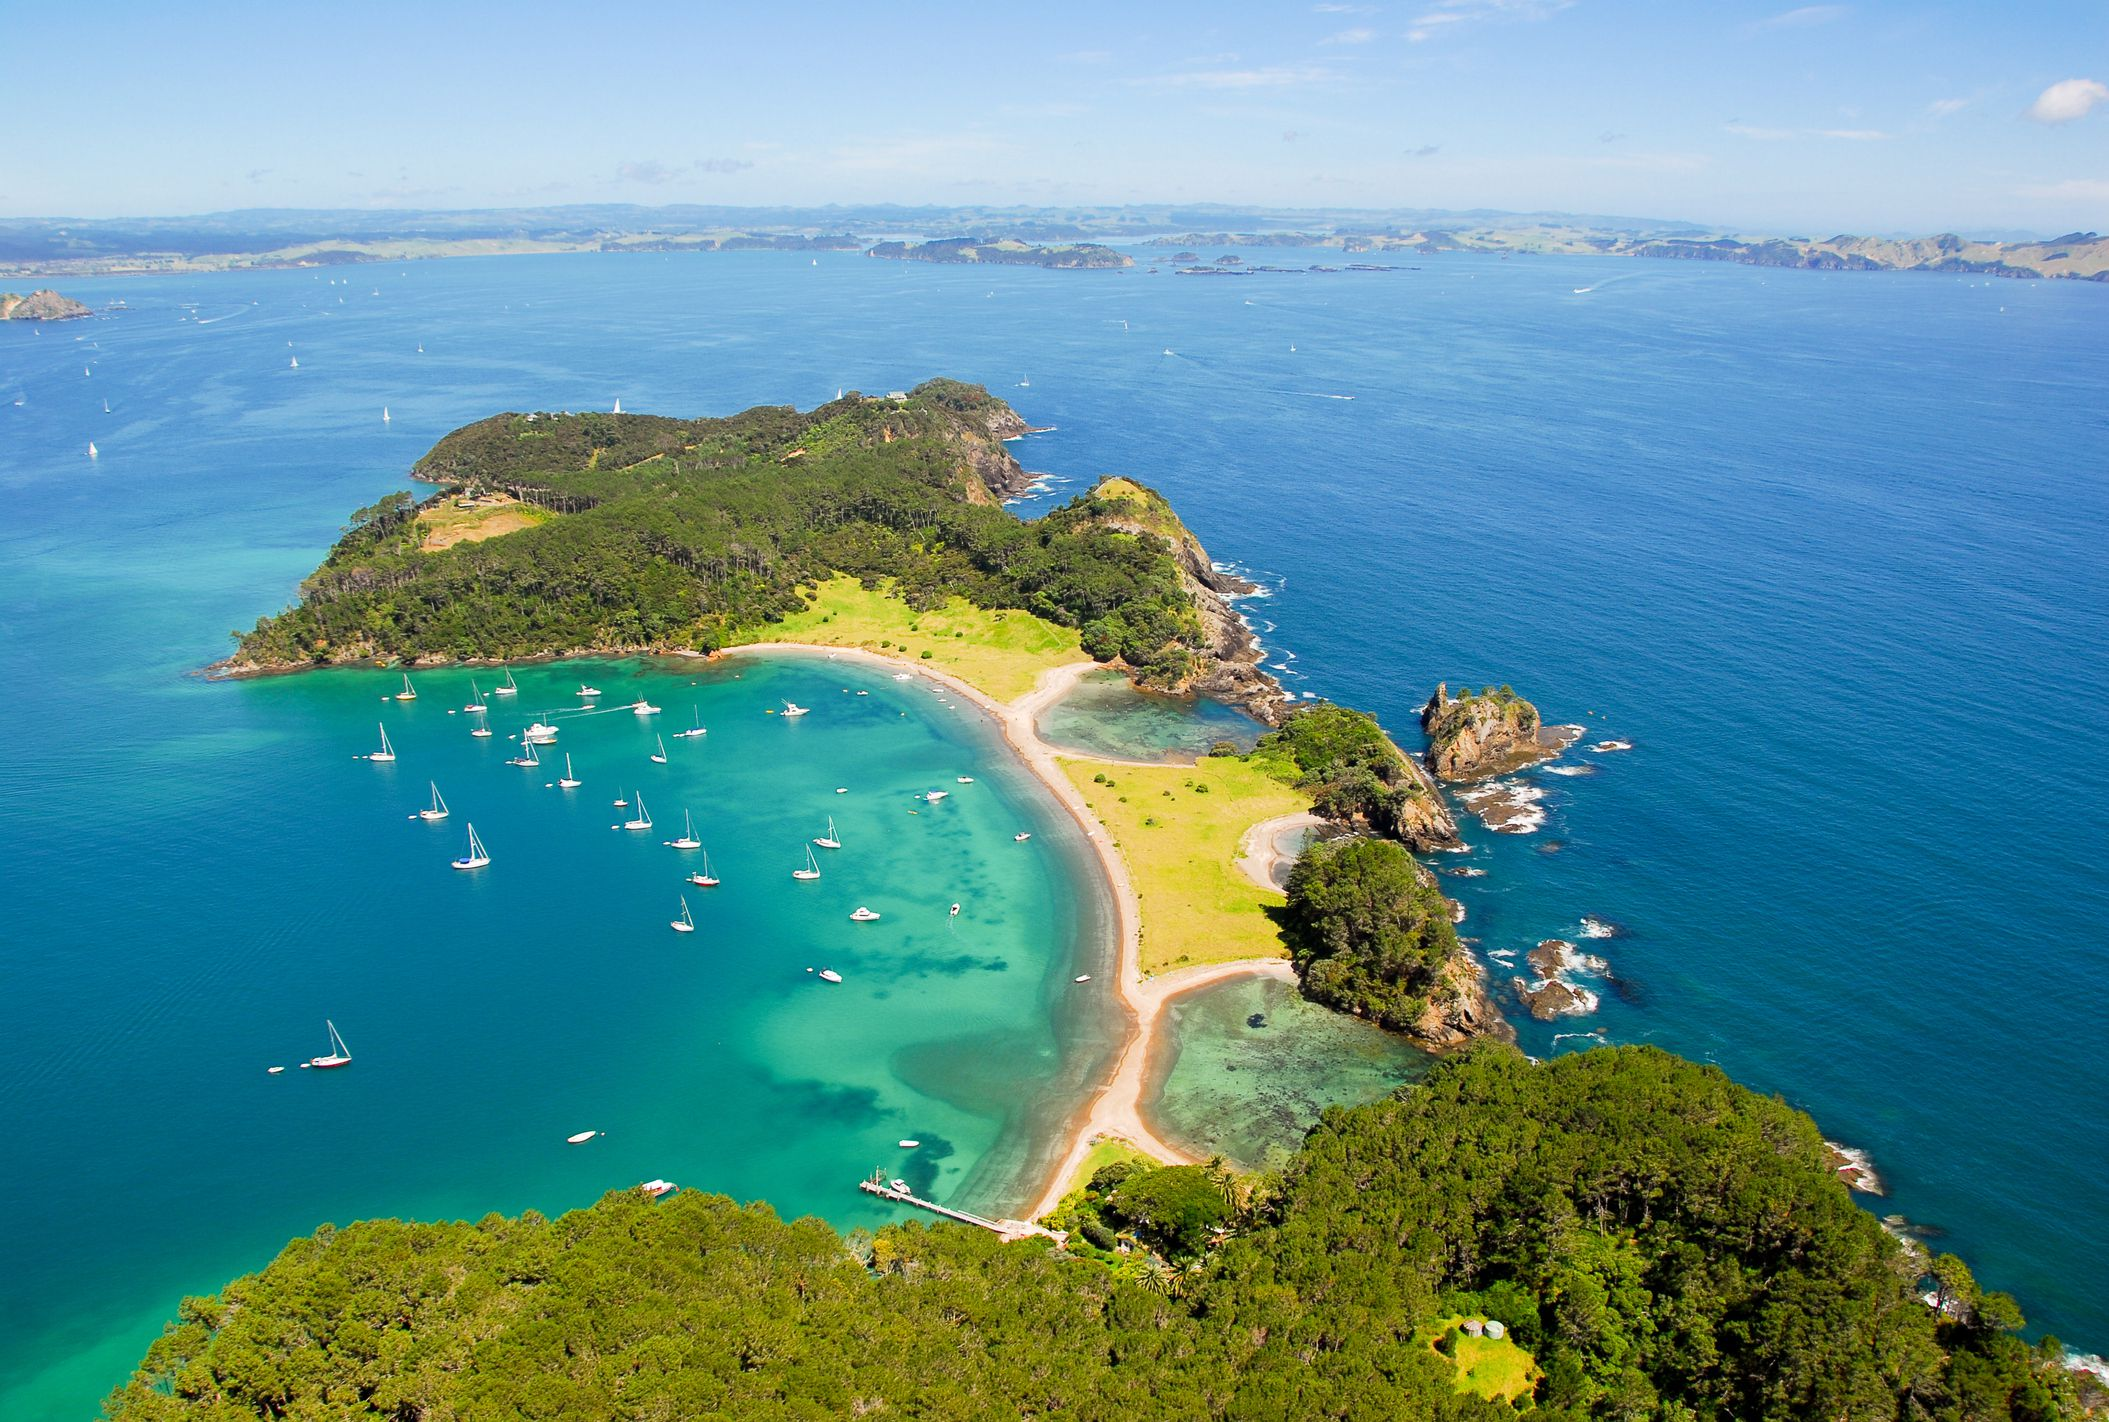 The Top 10 Things to Do in New Zealand's Bay of Islands